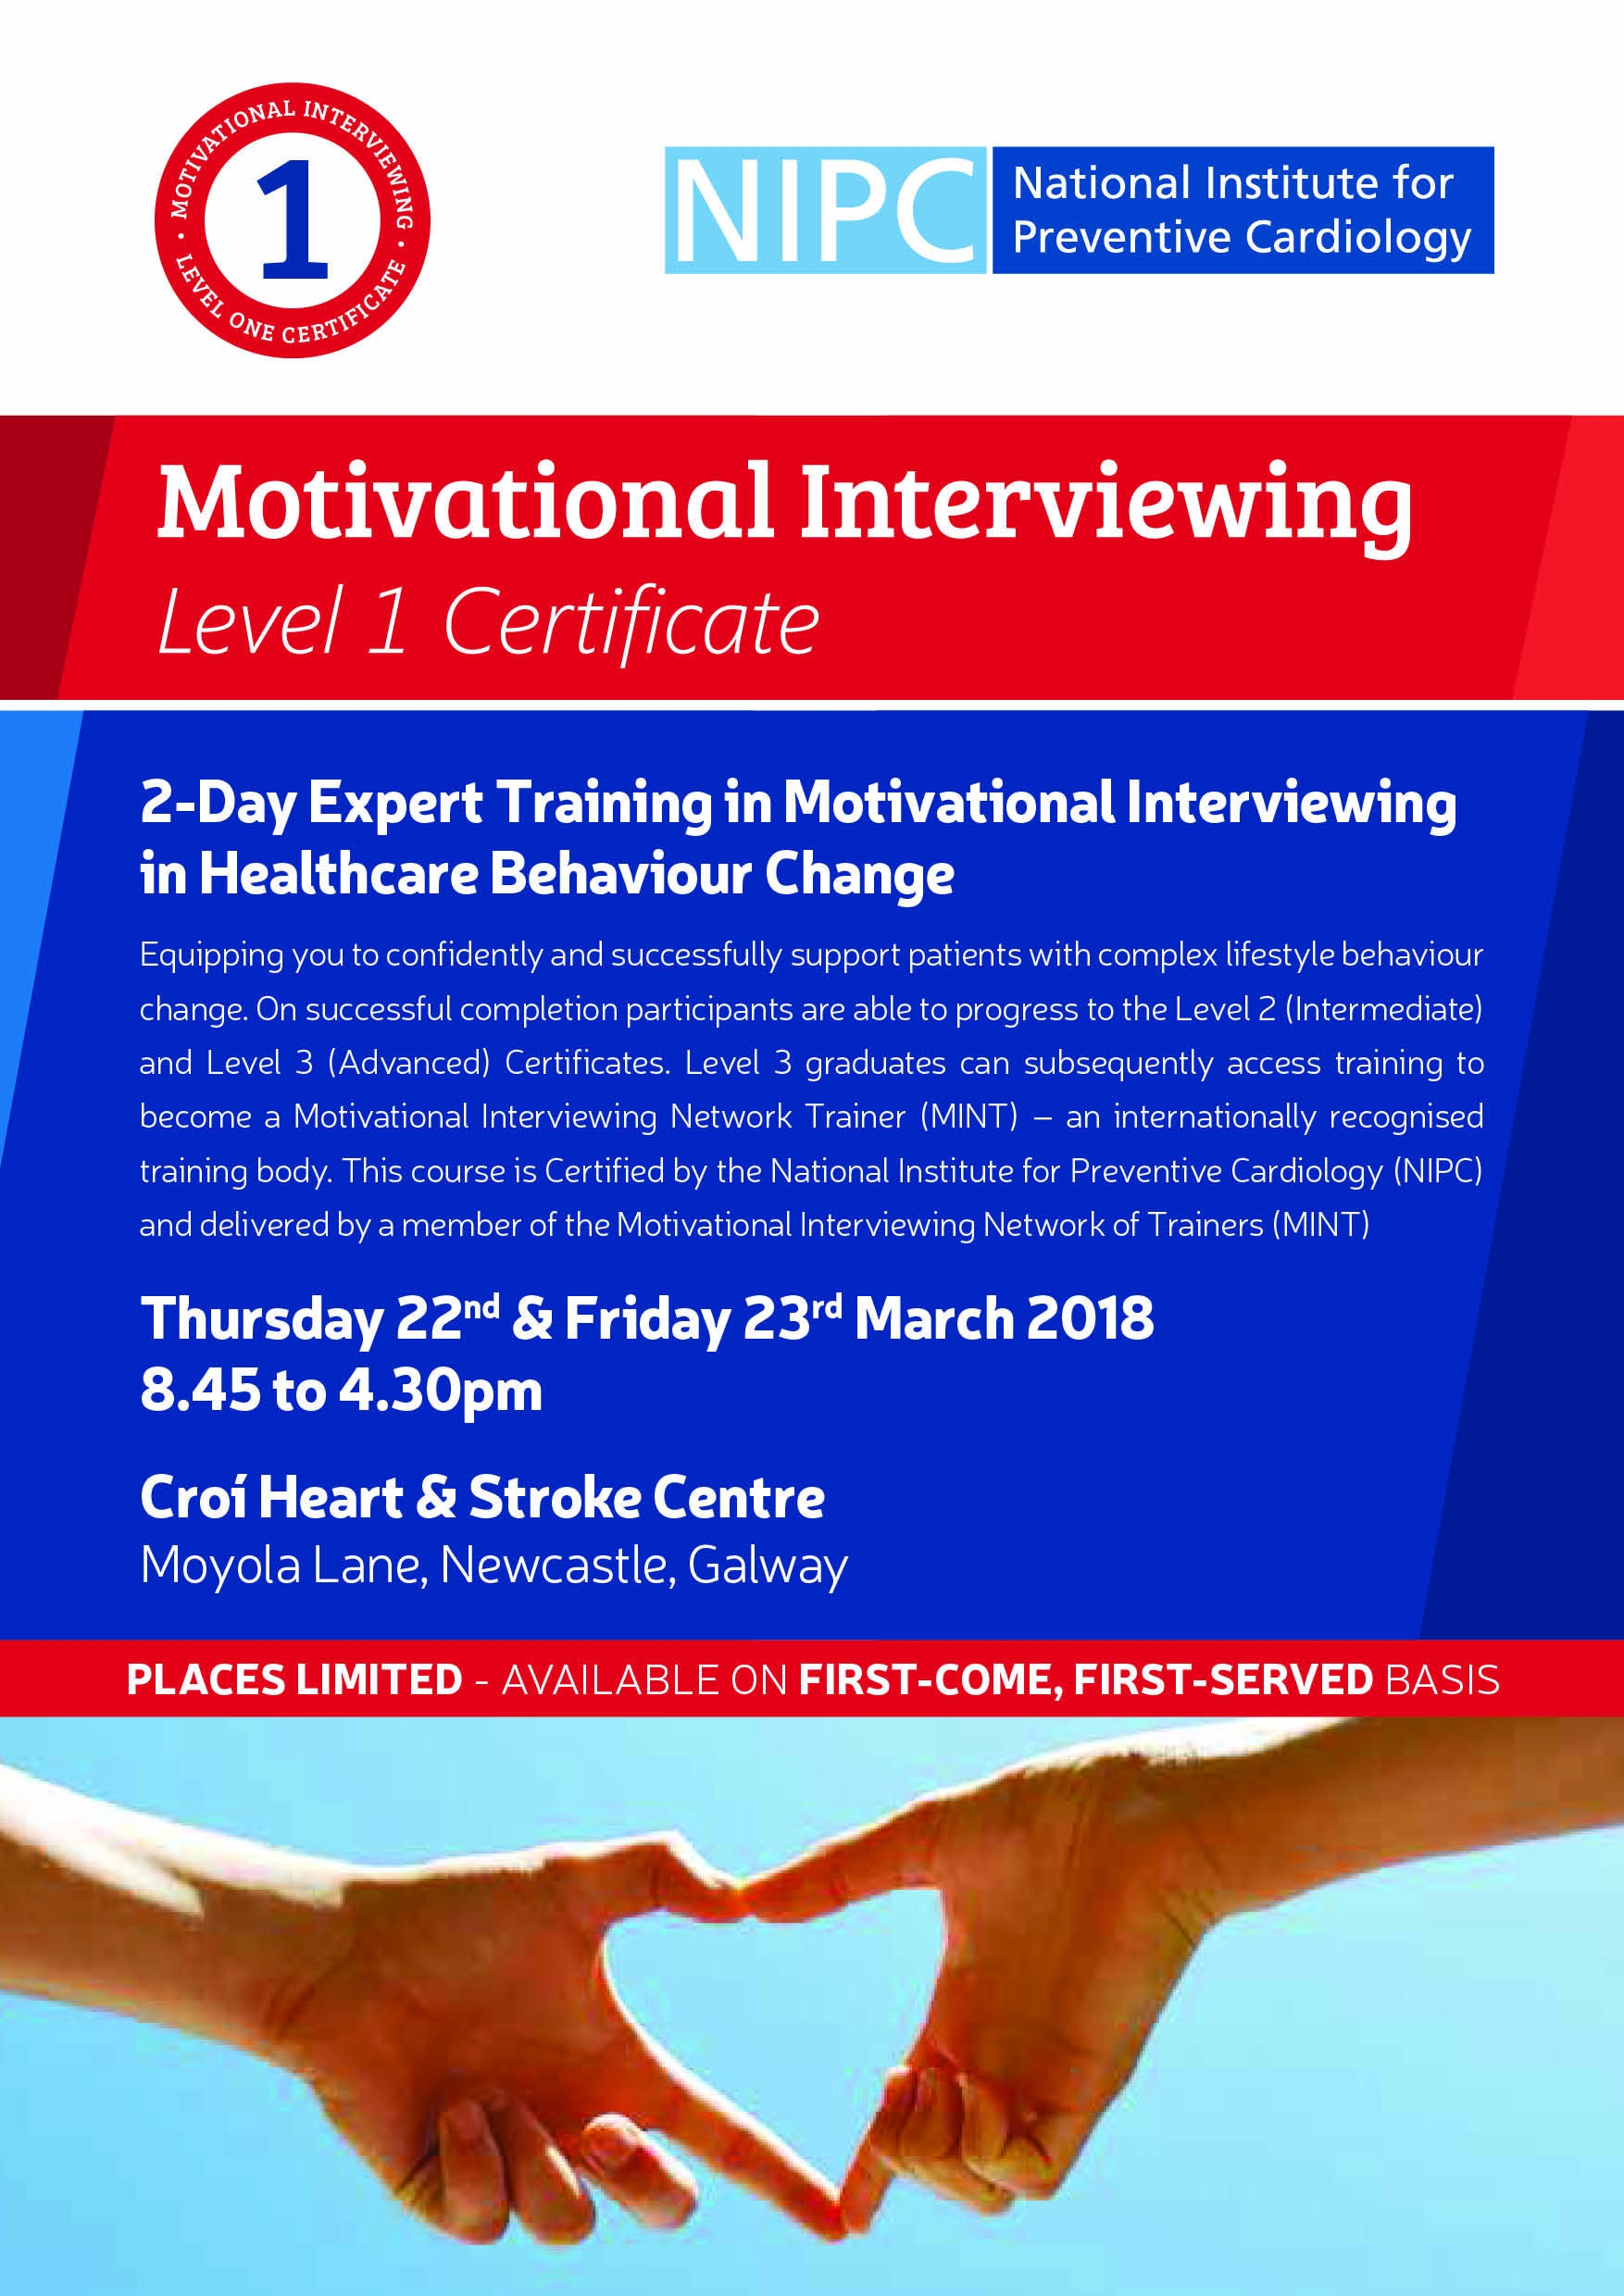 Motivational Interviewing Level 1 Certificate 22nd & 23rd March 2018 (NIPC Alliance Members)